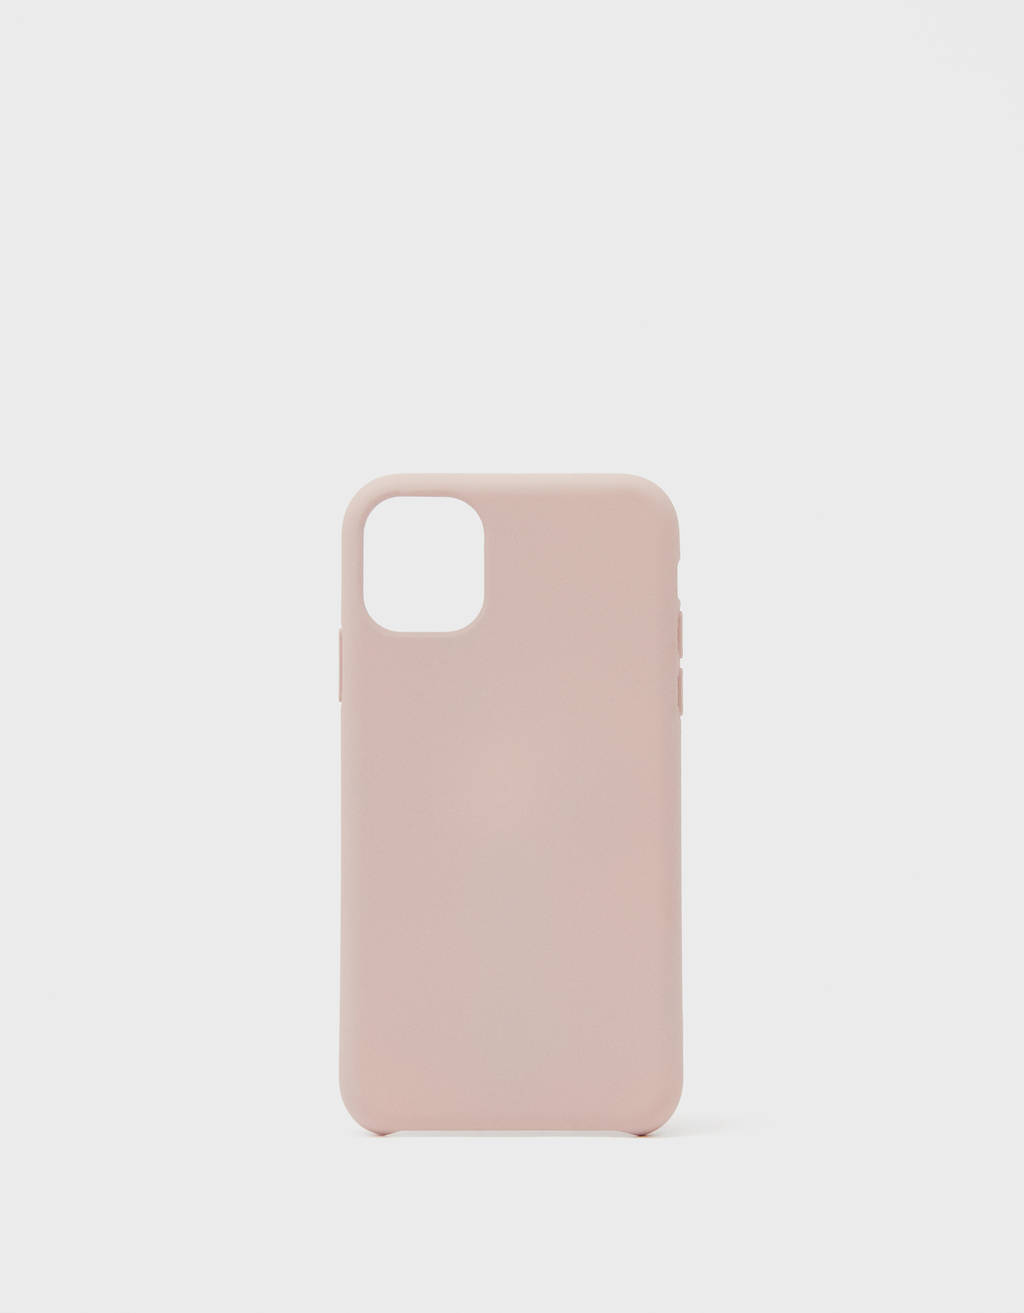 Coque unie iPhone 11